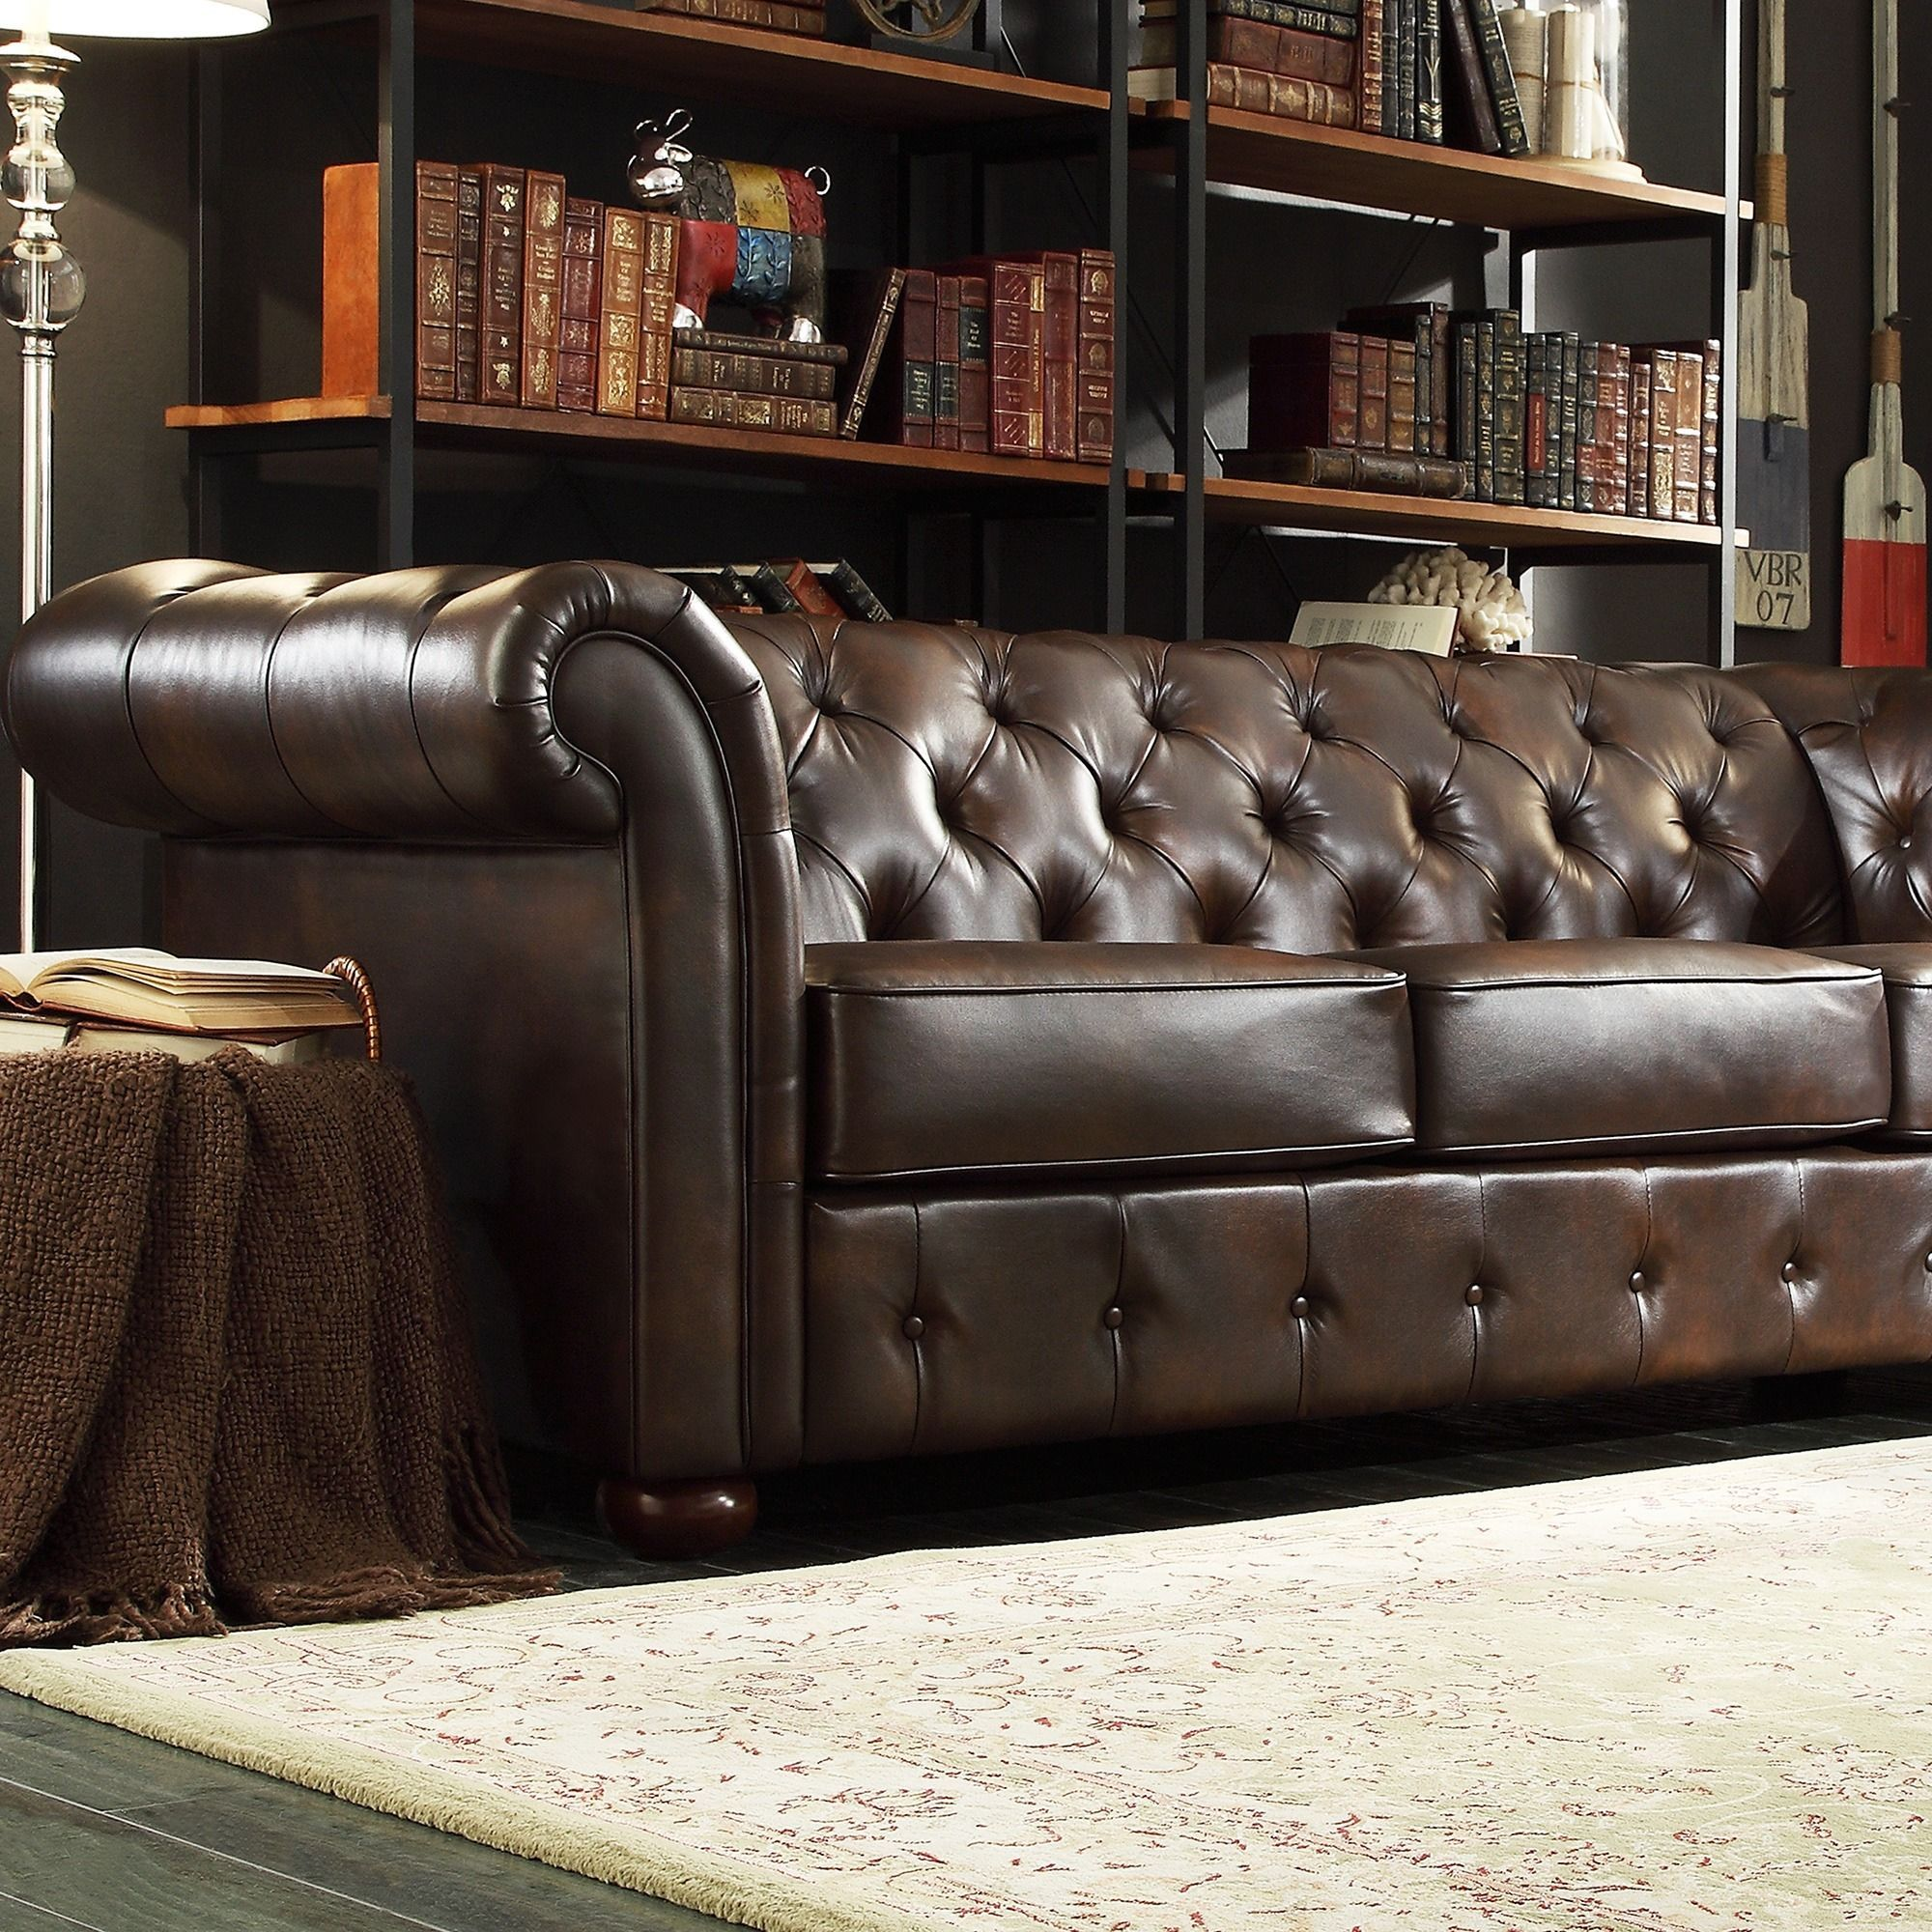 SIGNAL HILLS Knightsbridge Brown Bonded Leather Tufted Scroll Arm  Chesterfield Sofa by TRIBECCA HOME by INSPIRE Q